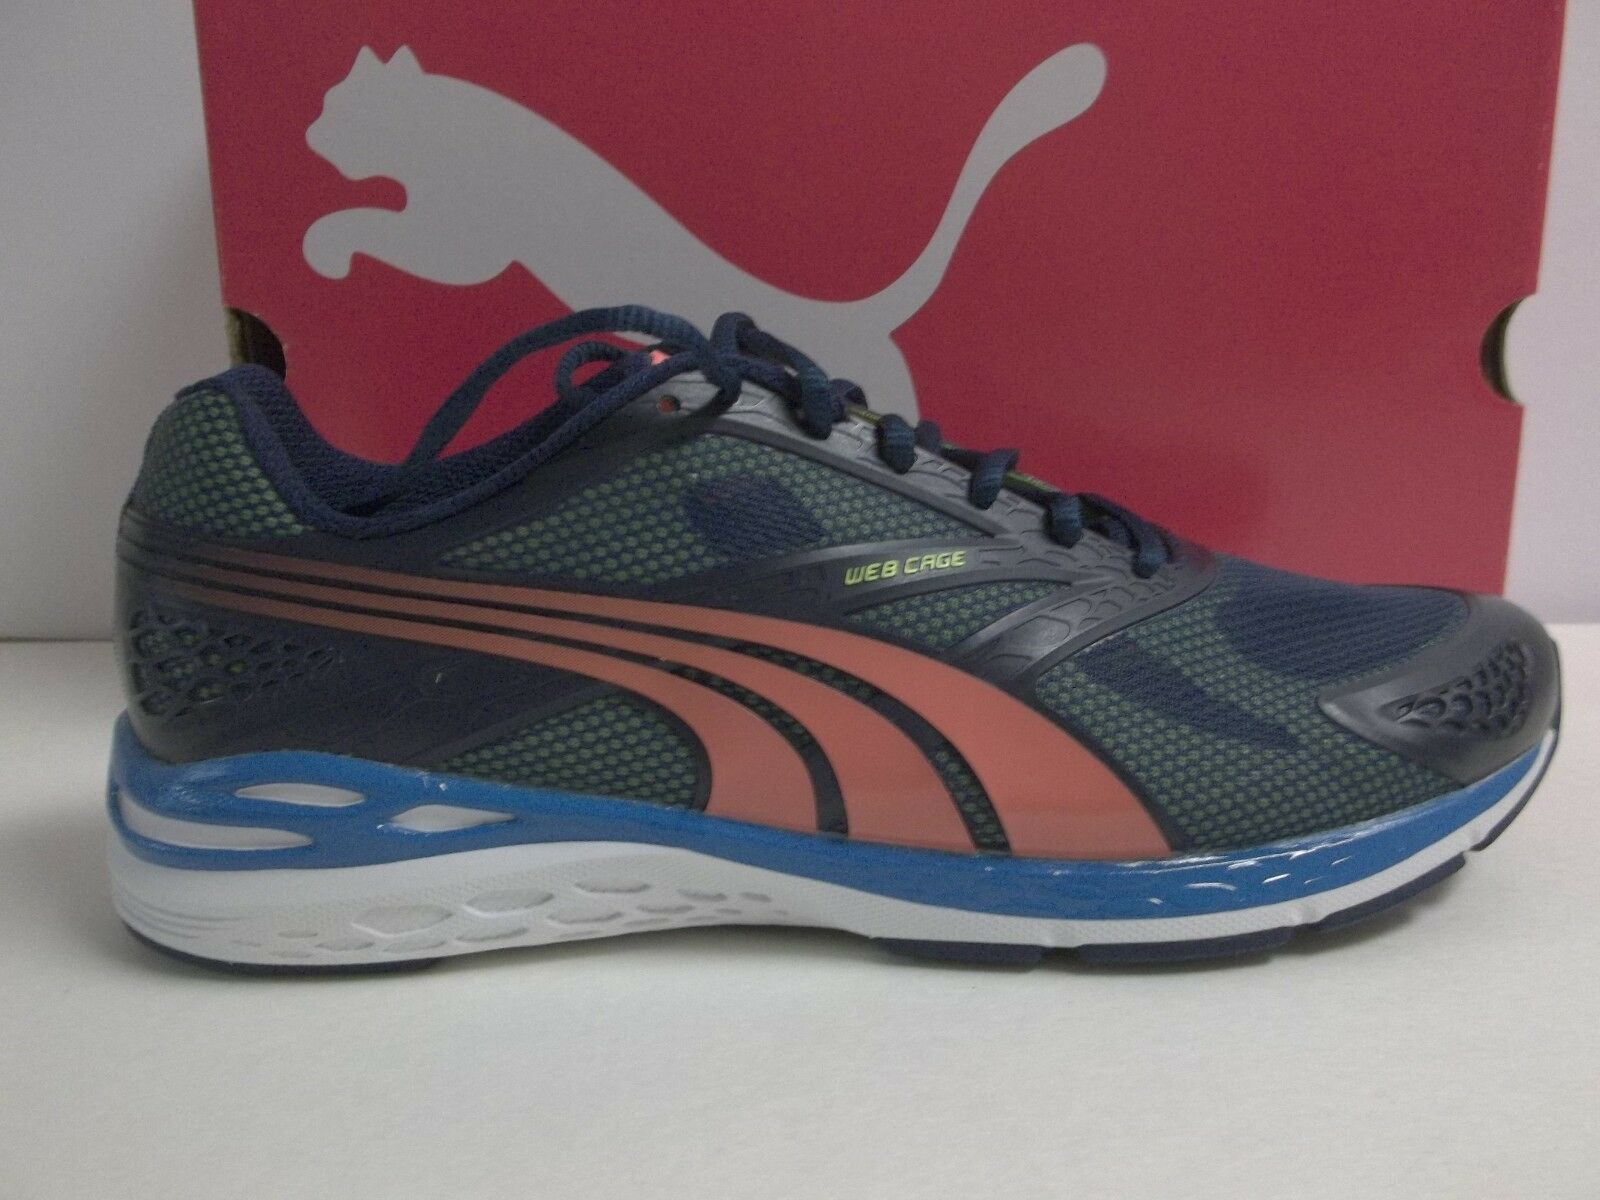 Puma Size 13 M New Mens Bioweb Speed Shoes Sneakers Blue